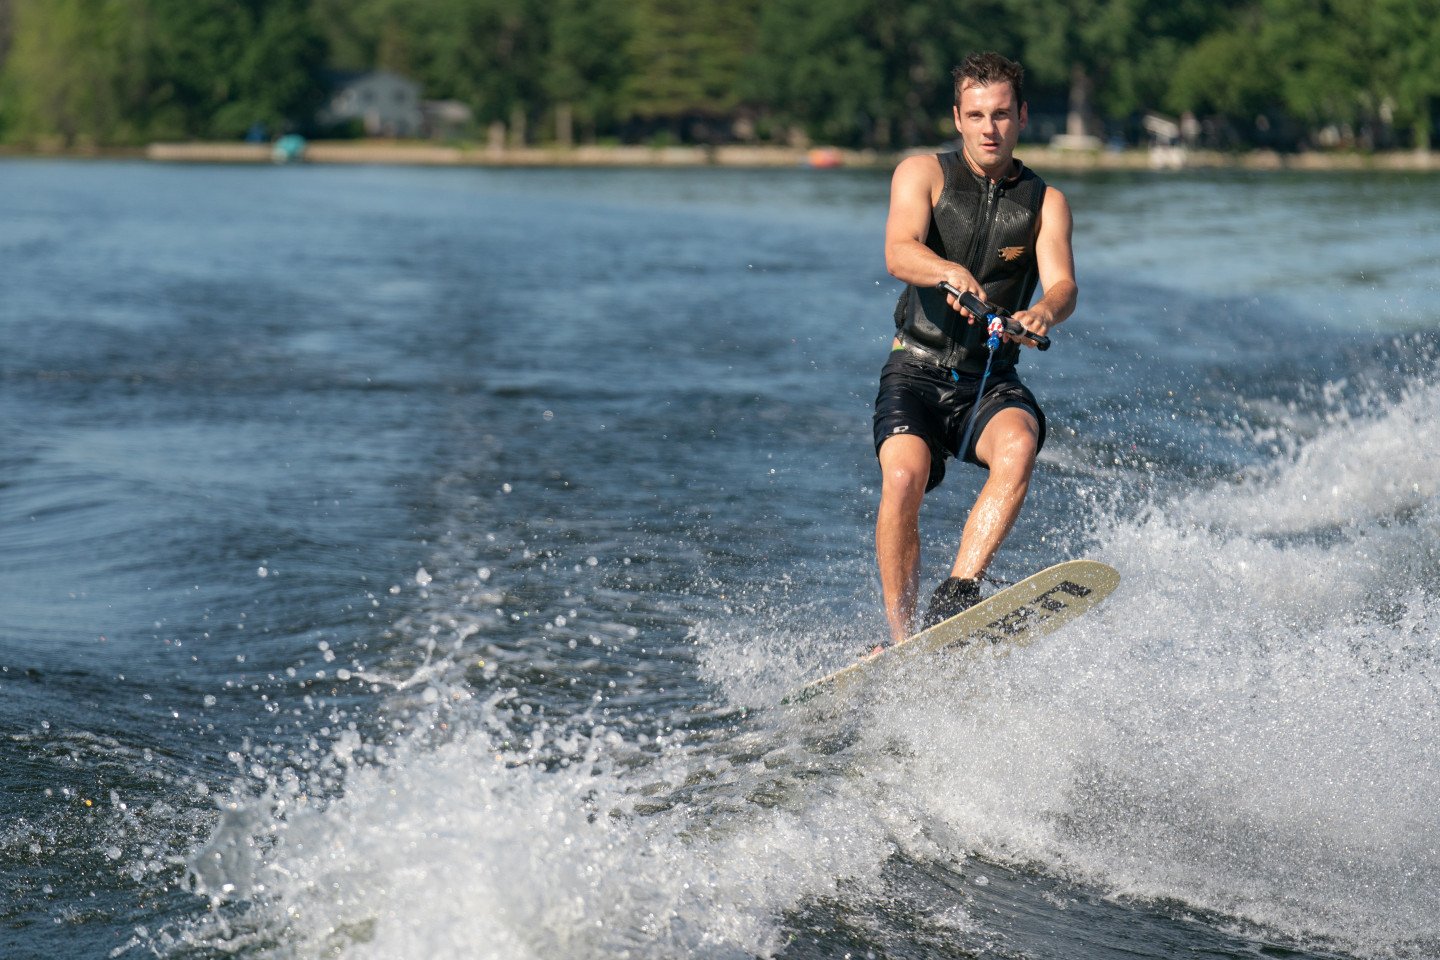 A person being towed on a wakeboard.